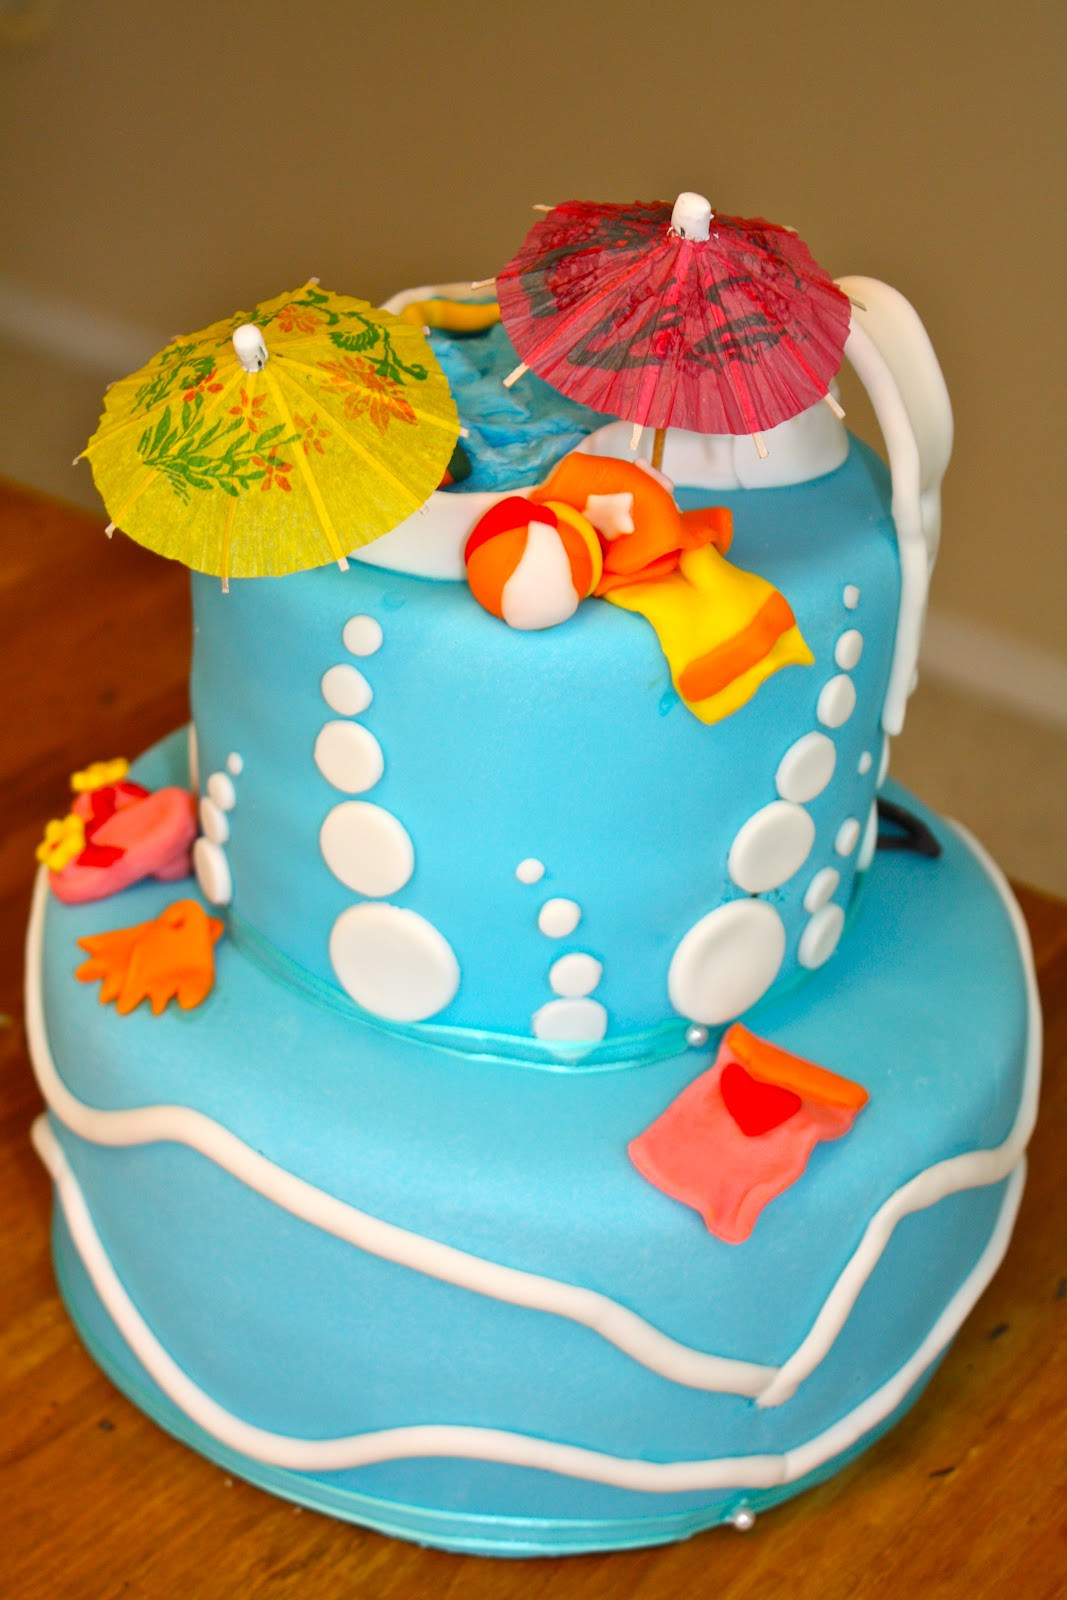 Pool Party Cake Ideas For Birthdays  bumble cakes Summer Pool Party Birthday Cake